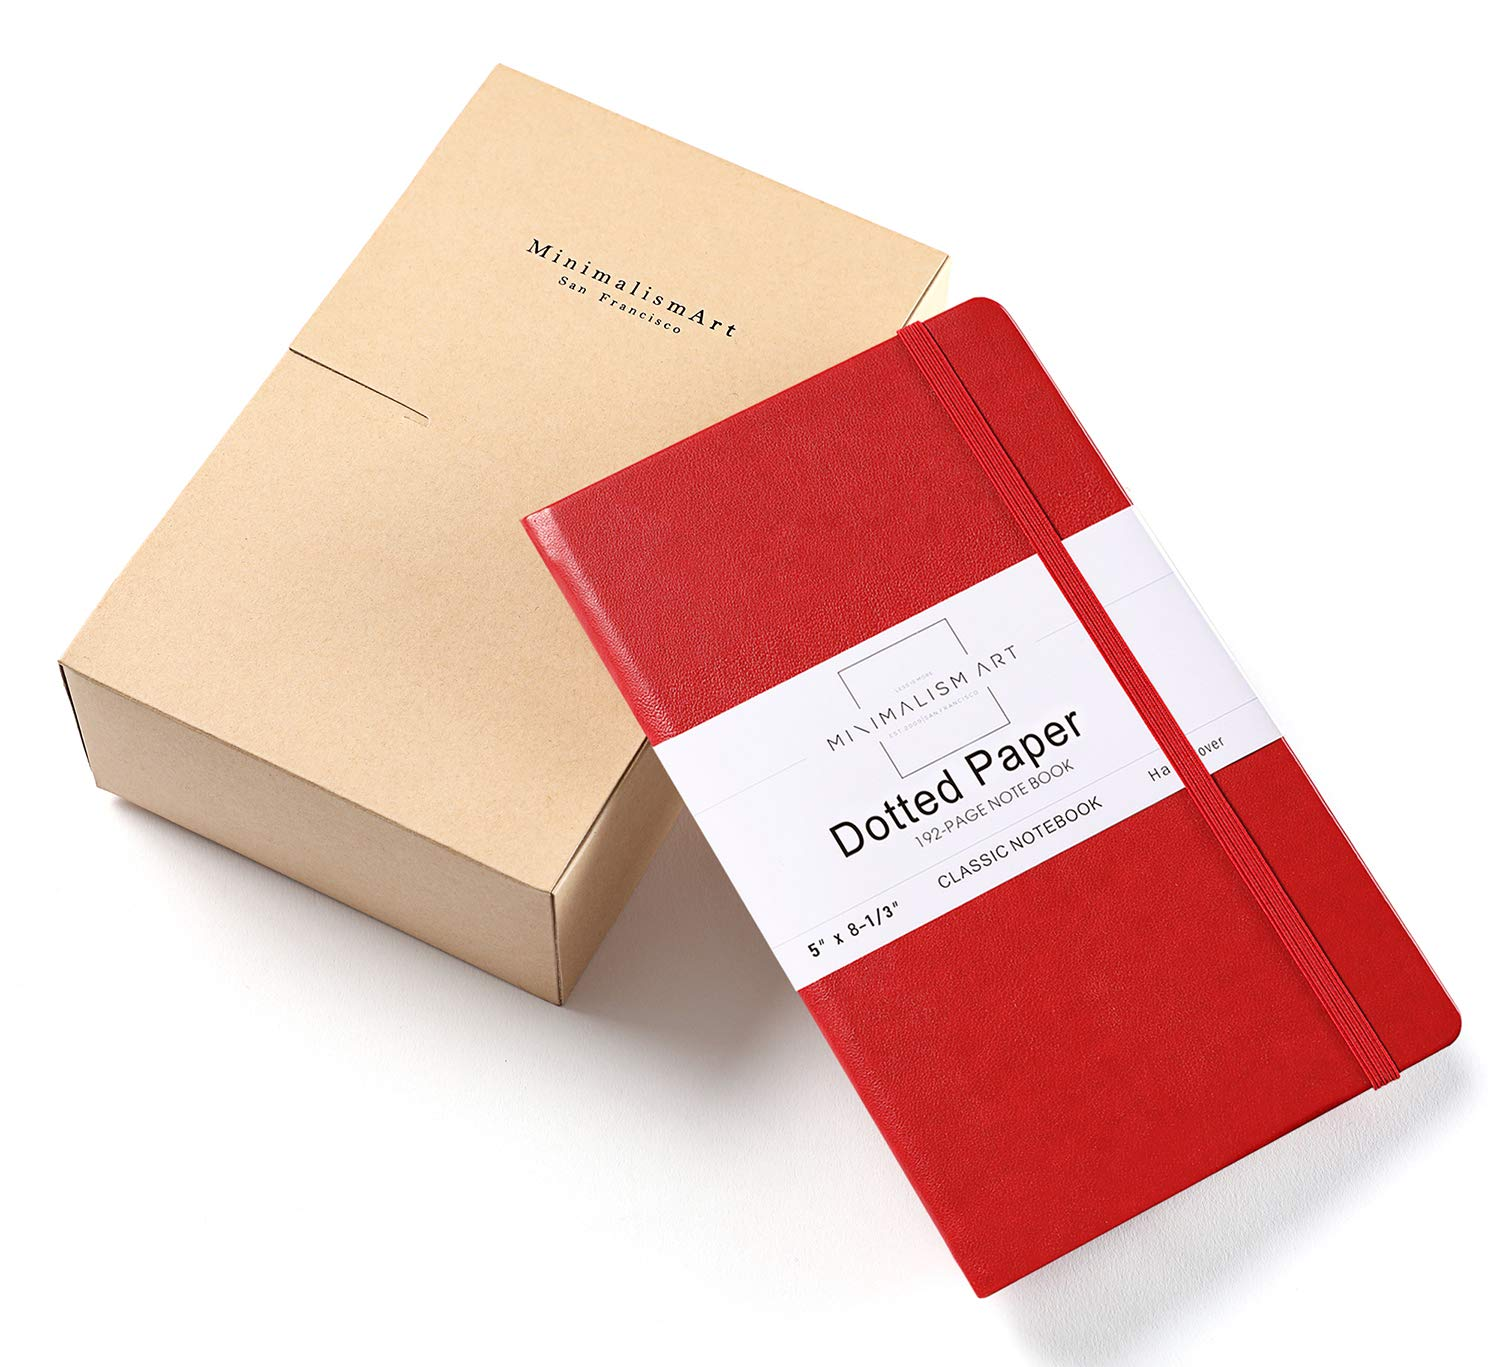 Minimalism Art, 3-Pack Classic Notebook Journal, A5 Size 5 X 8.3 inches, Red, Dotted Grid Page, 192 Pages, Hard Cover, Fine PU Leather, Inner Pocket, Quality Paper-100gsm, Designed in San Francisco